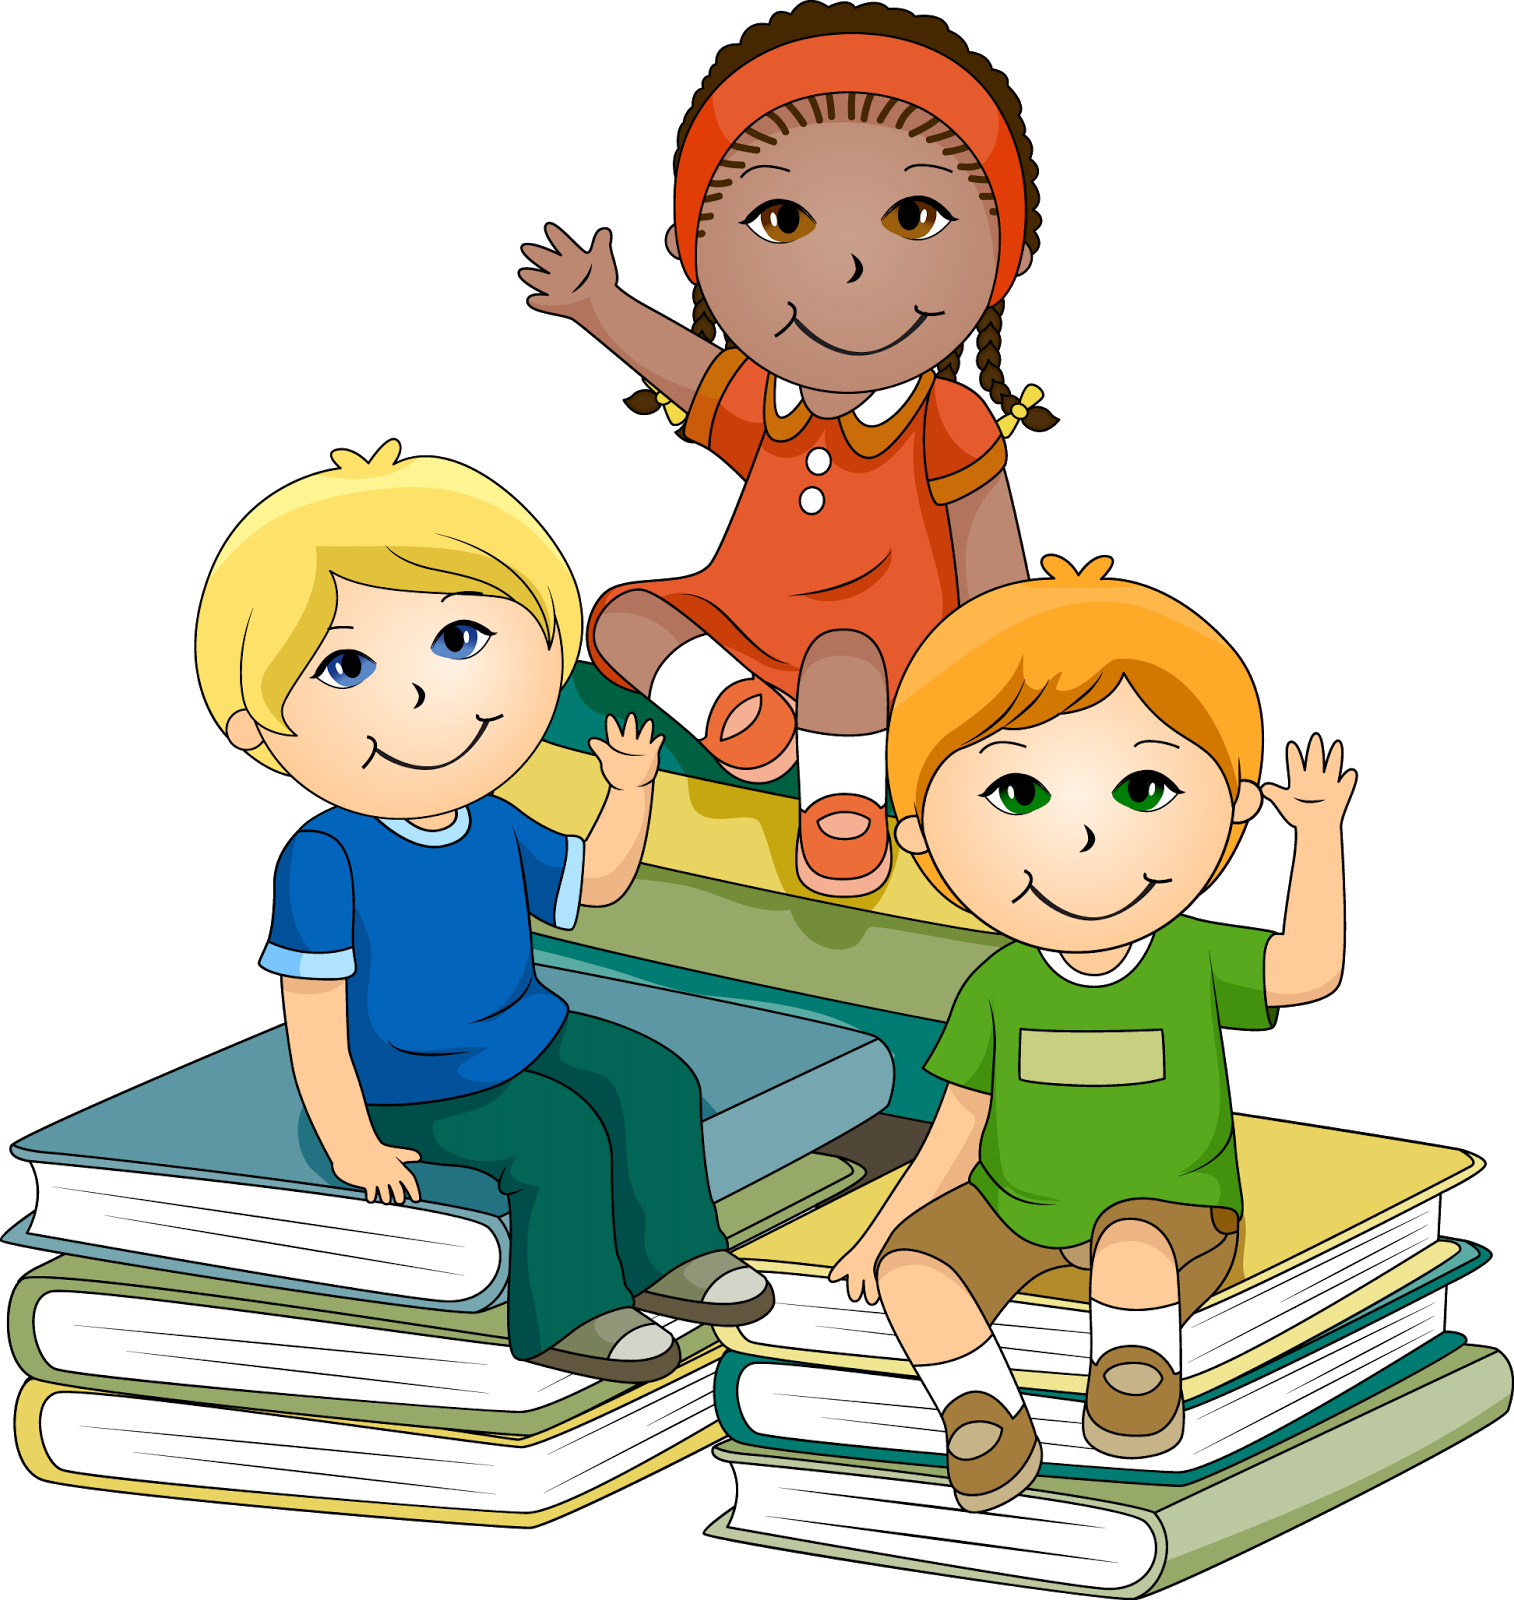 Children Books Png